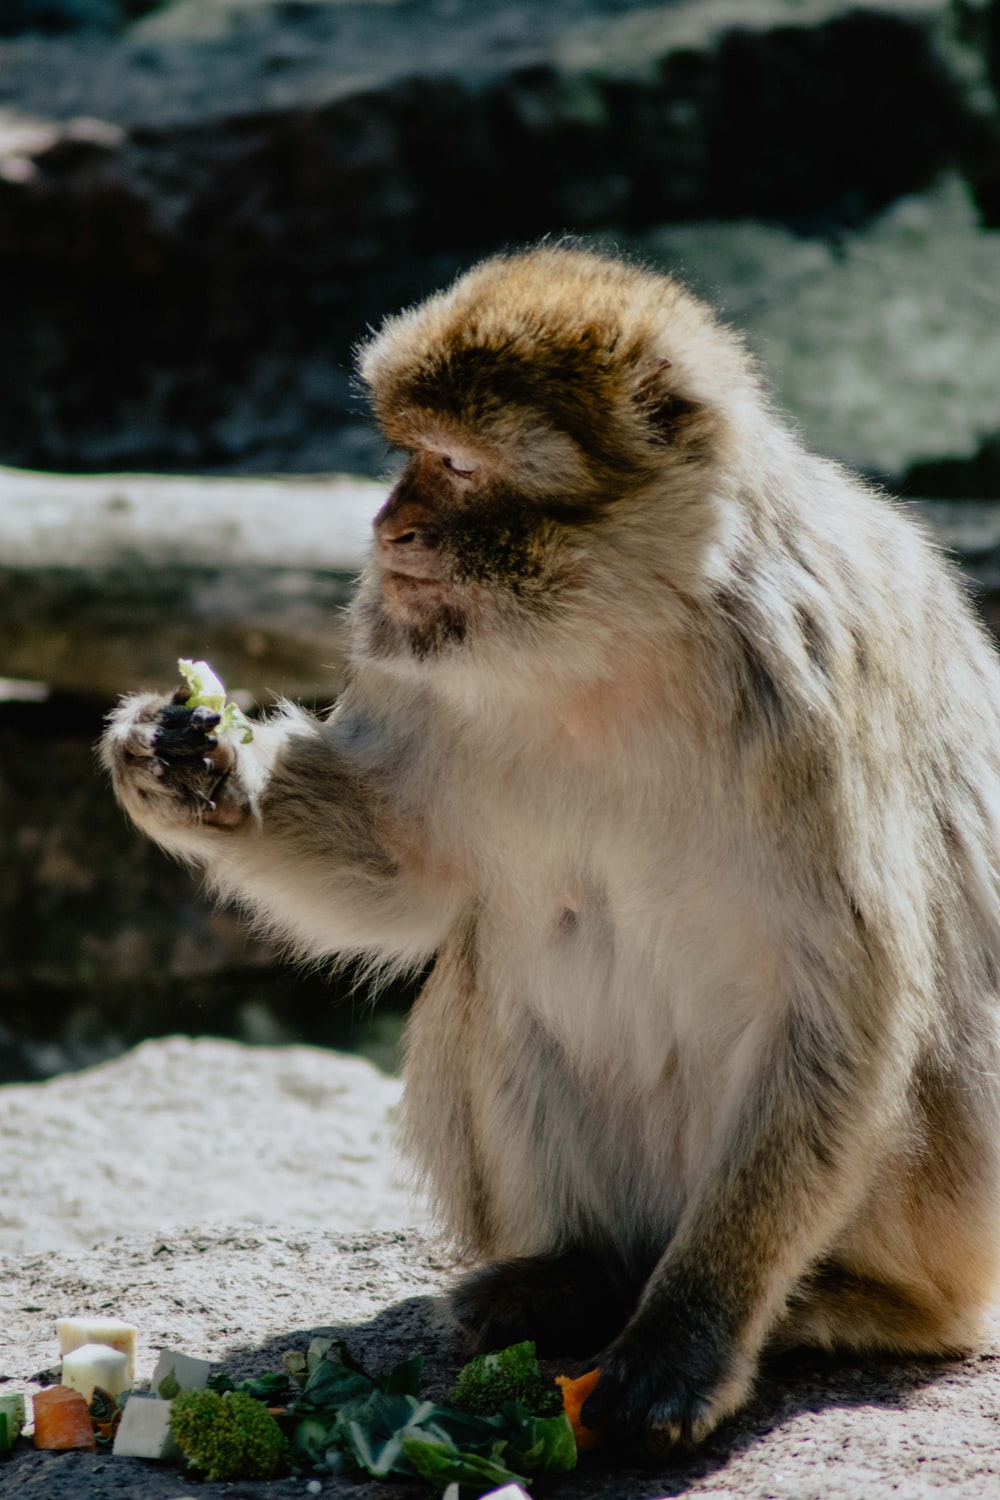 brown and white monkey eating fruit